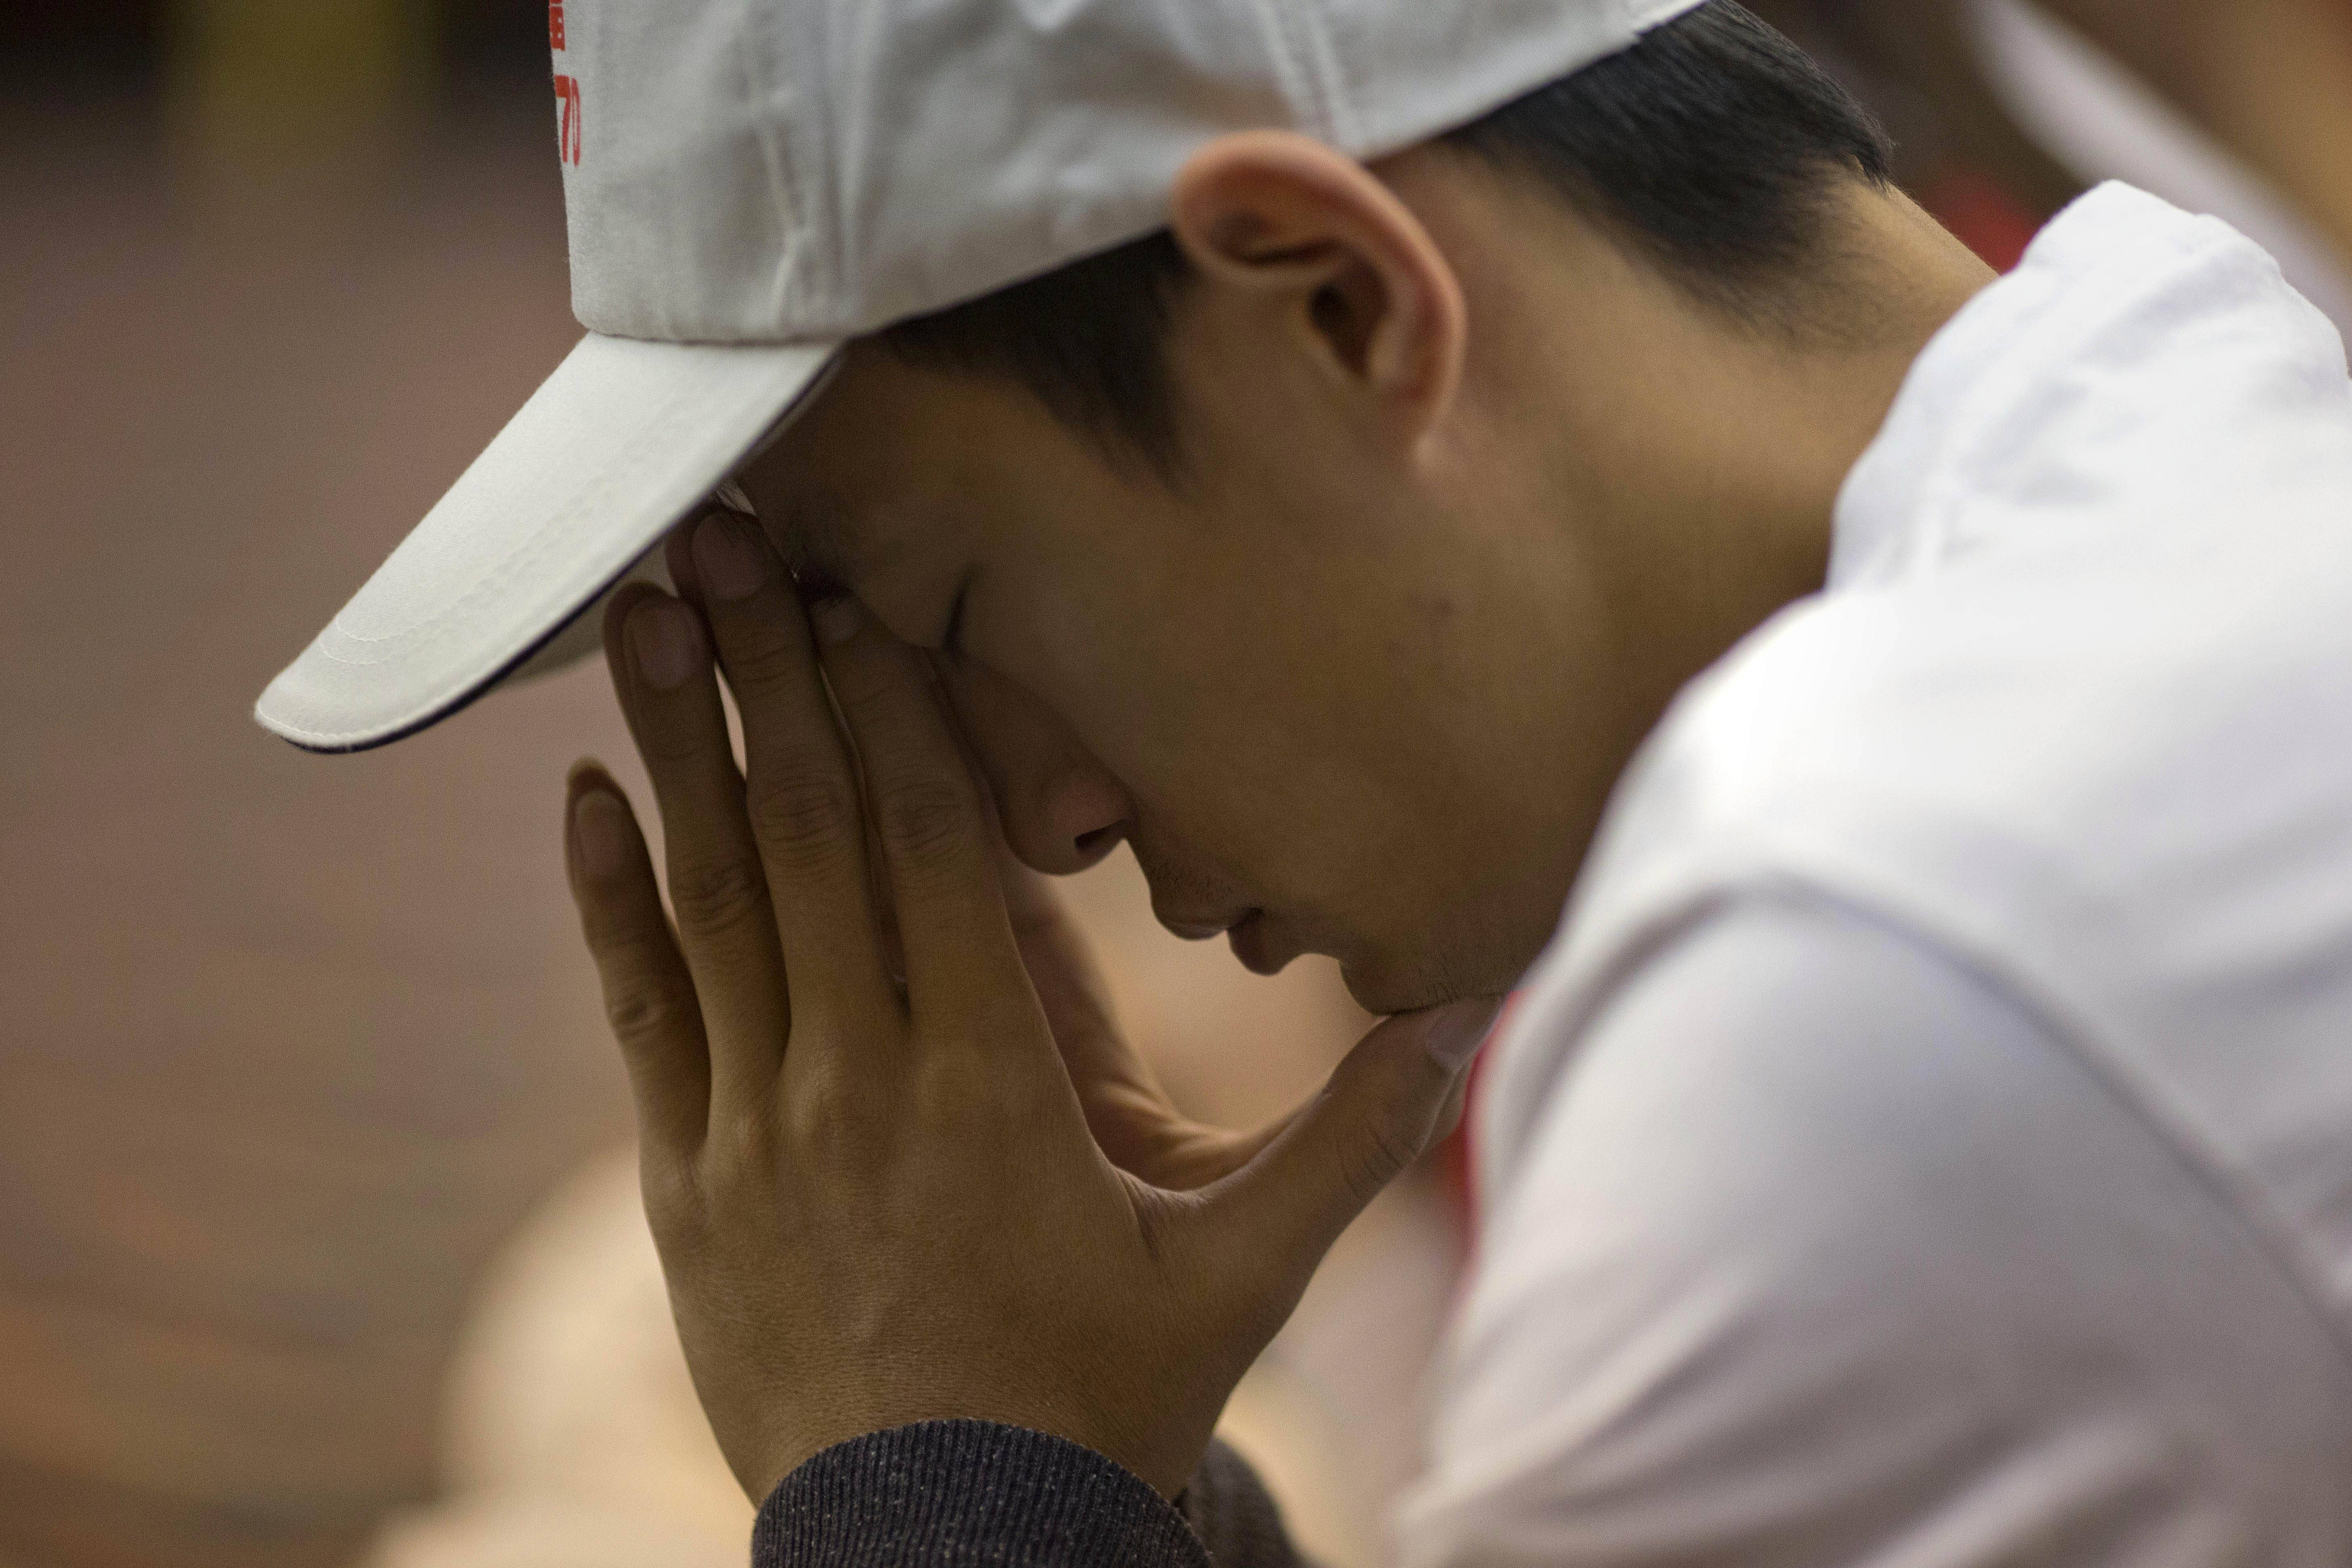 One of relatives of Chinese passengers on board the Malaysia Airlines Flight 370 prays Friday at a hotel conference room in Beijing, China. A robotic submarine headed back down into the depths of the Indian Ocean on Friday to scour the seafloor for any trace of the missing Malaysian jet one month after the search began off Australia's west coast, as data from the sub's previous missions turned up no evidence of the plane.